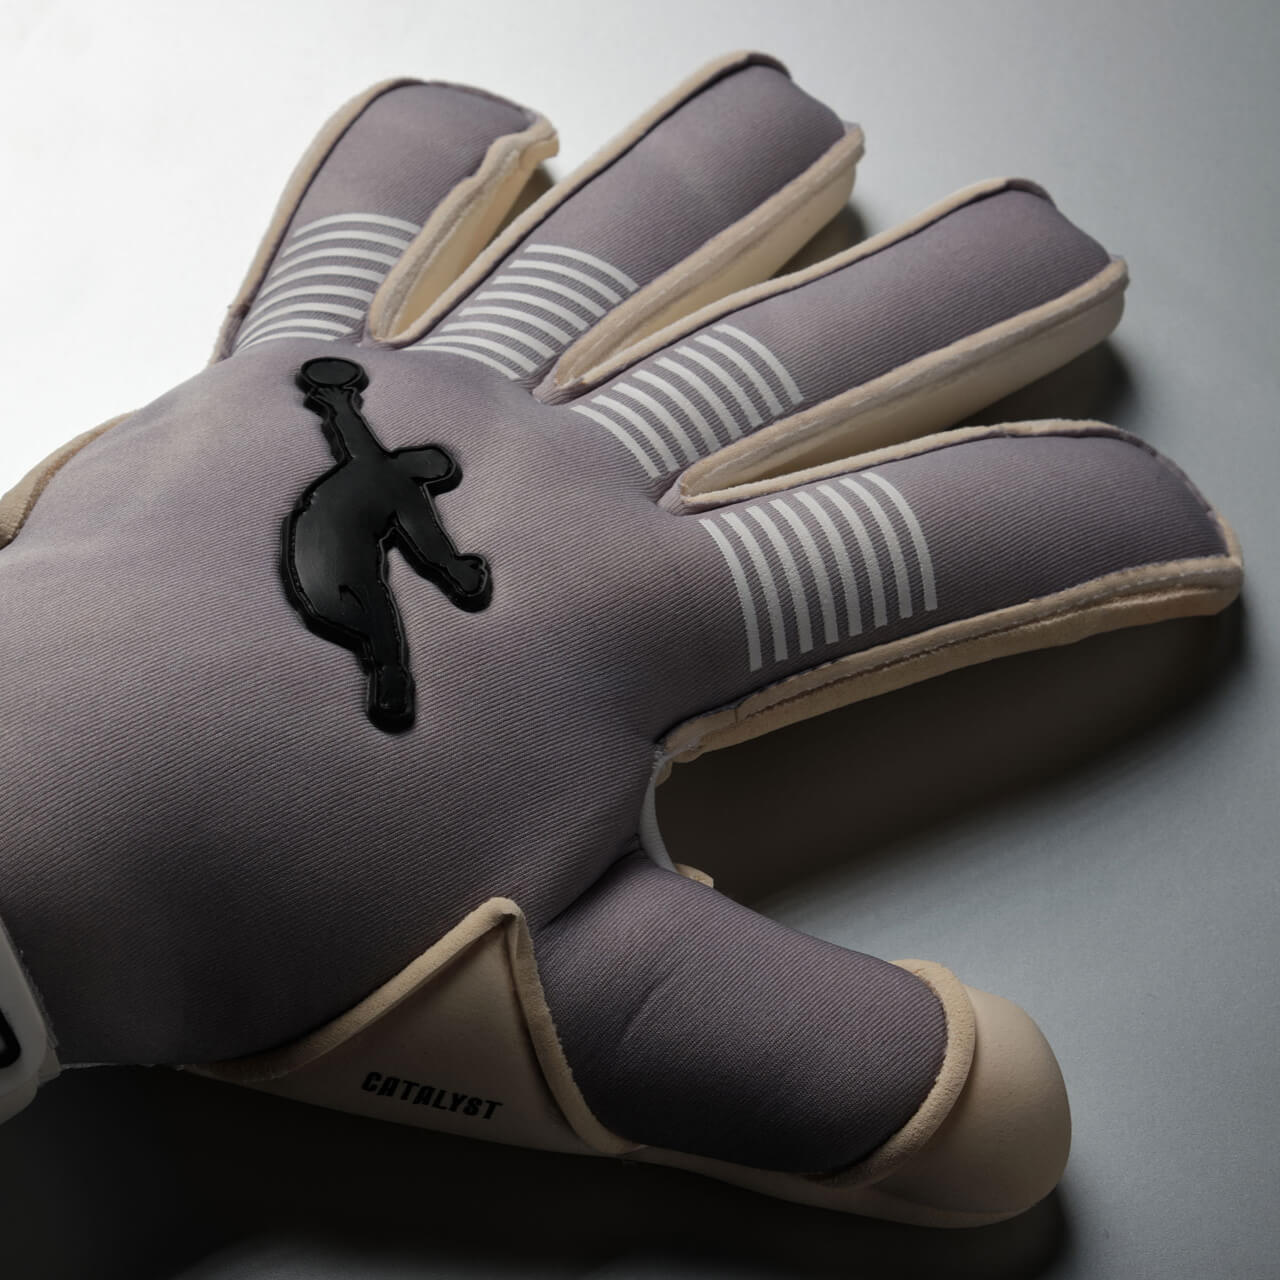 Brave GK Catalyst Grey-1-Brave GK